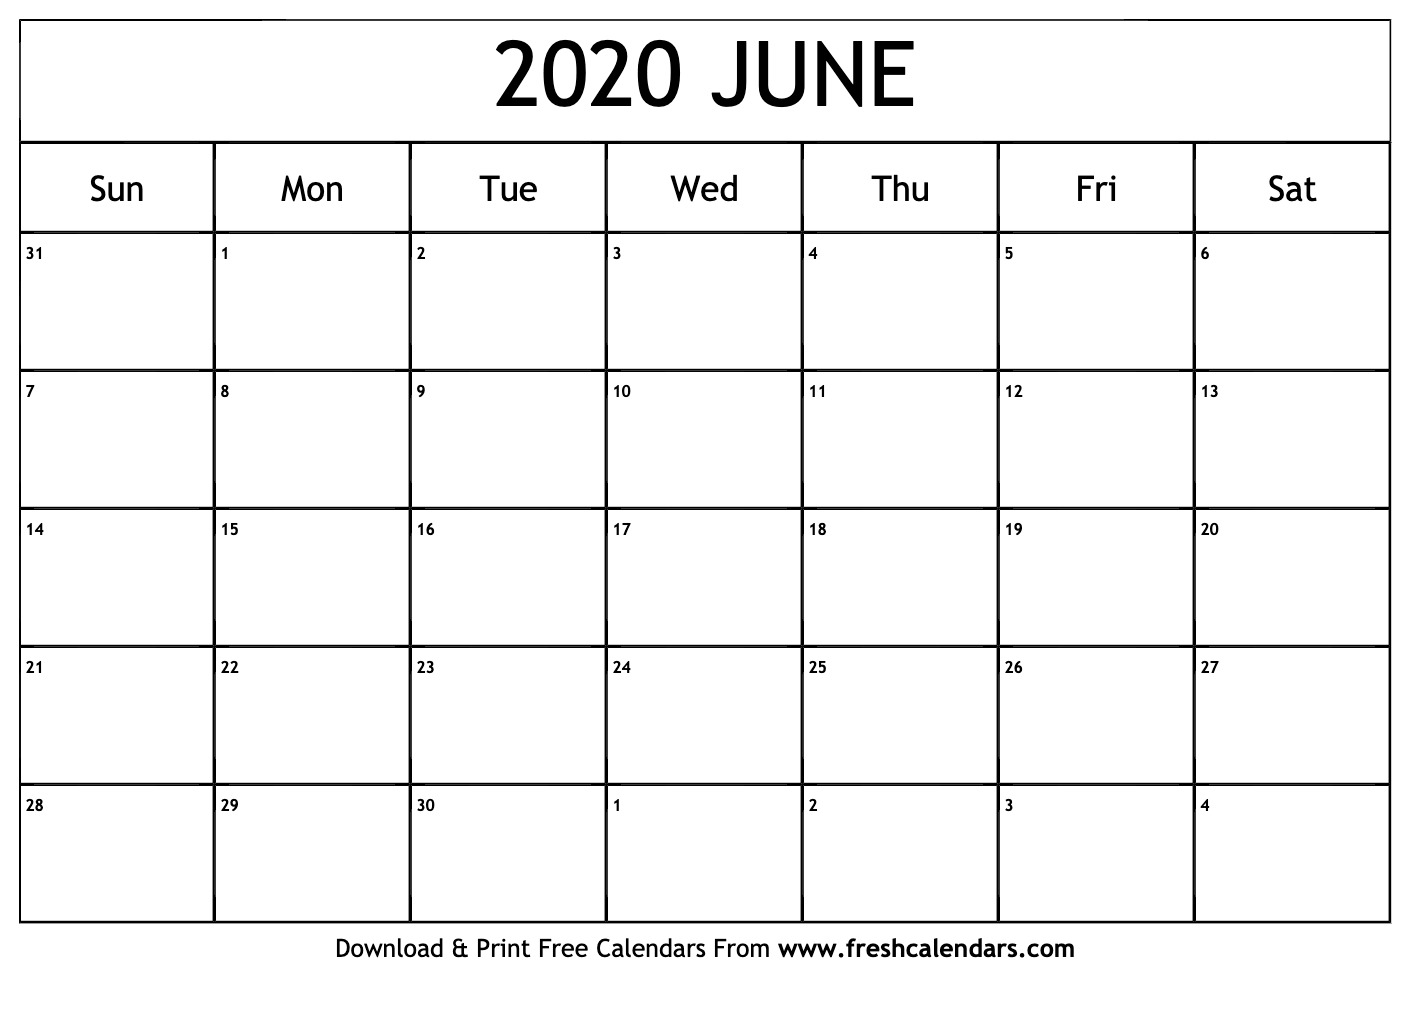 Calendar June 2020.June 2020 Calendar Printable Fresh Calendars